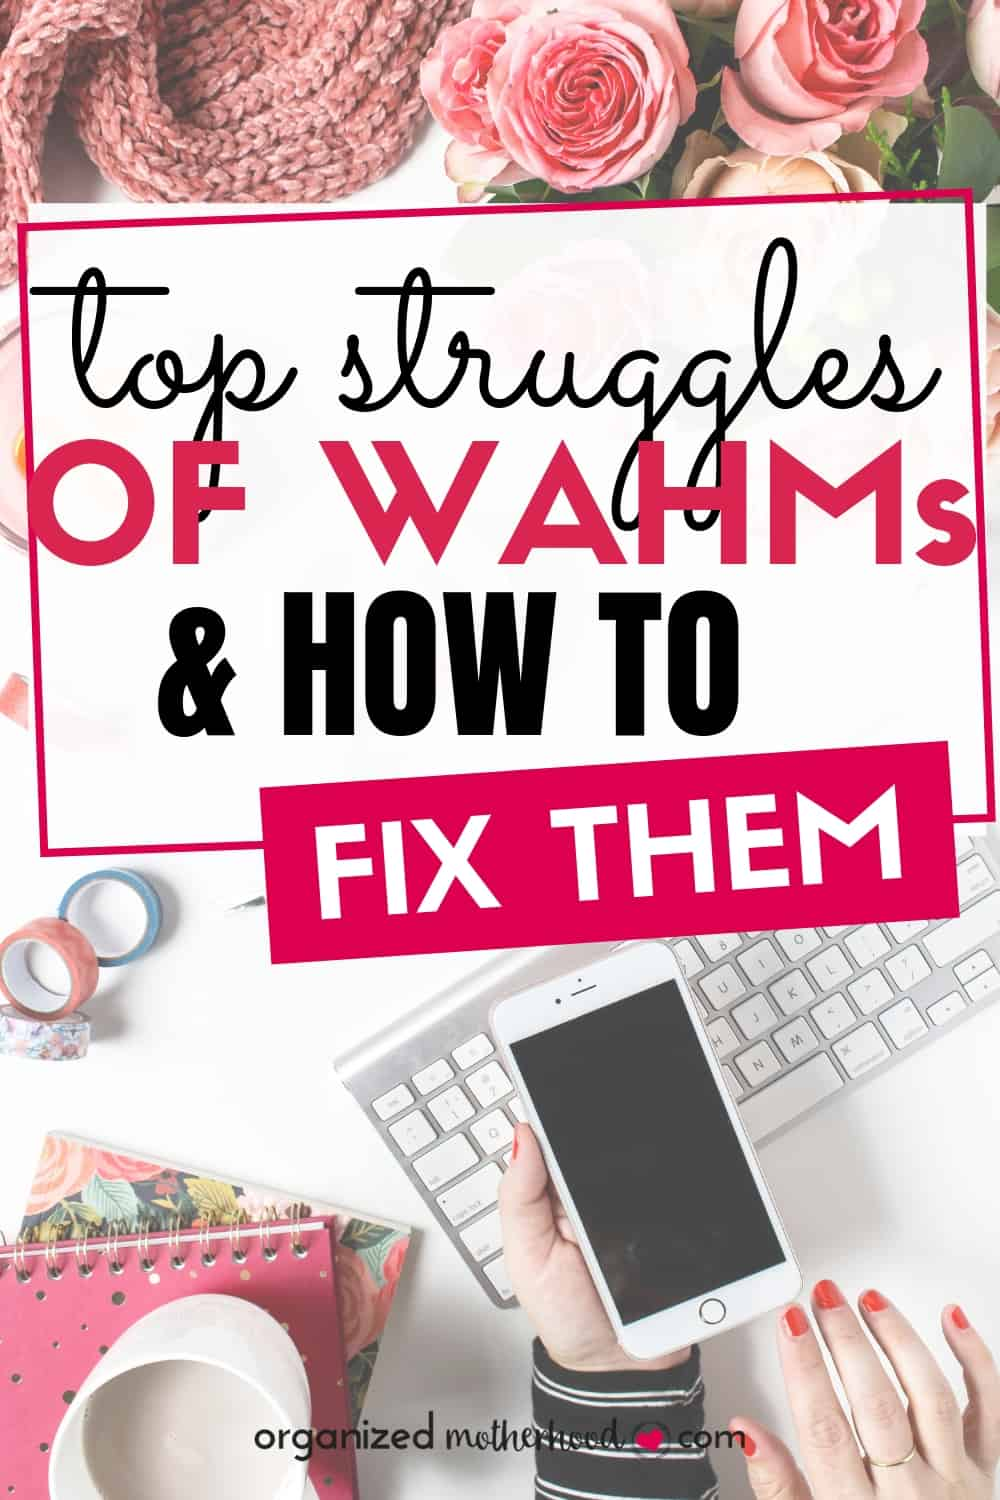 No one said working from home would be easy! These are the top challenges of WAHMs (and simple solutions to fix them). #productivity #WAHM